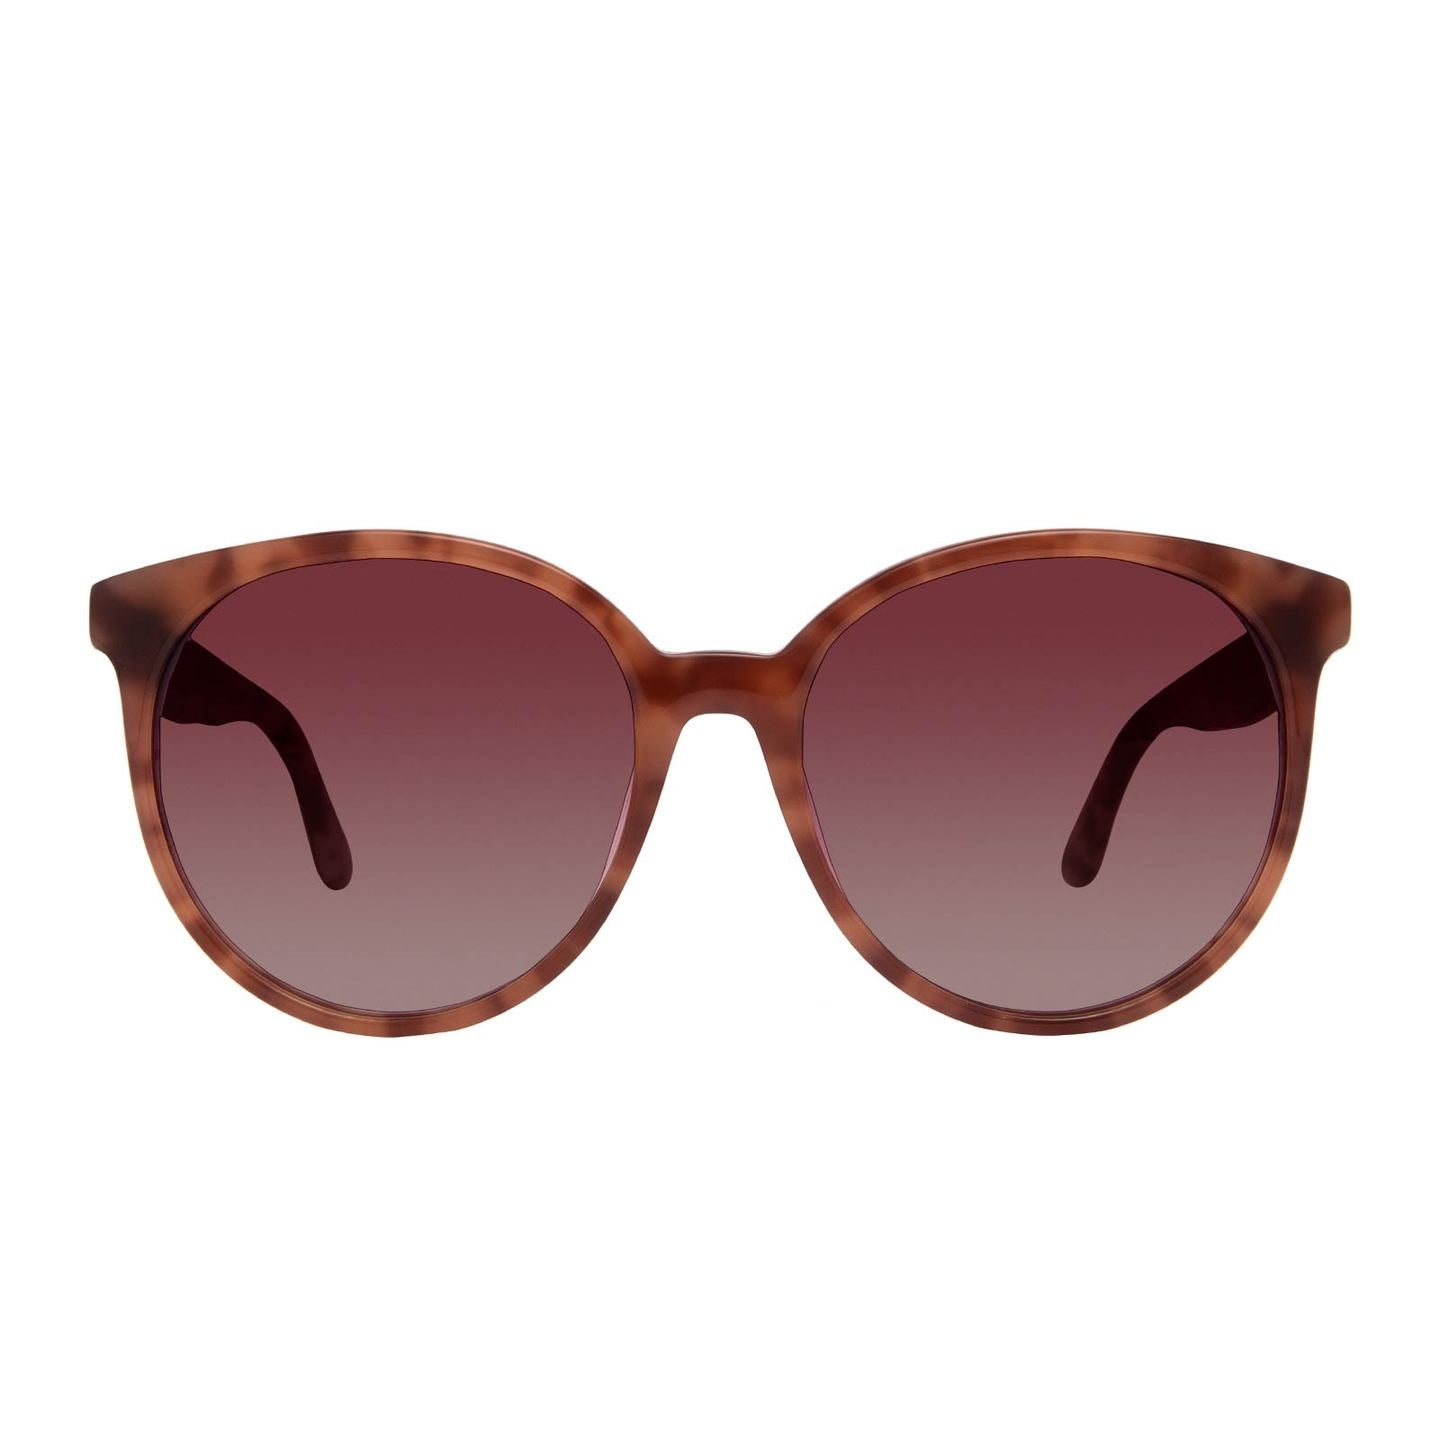 Cosmo Sunglasses